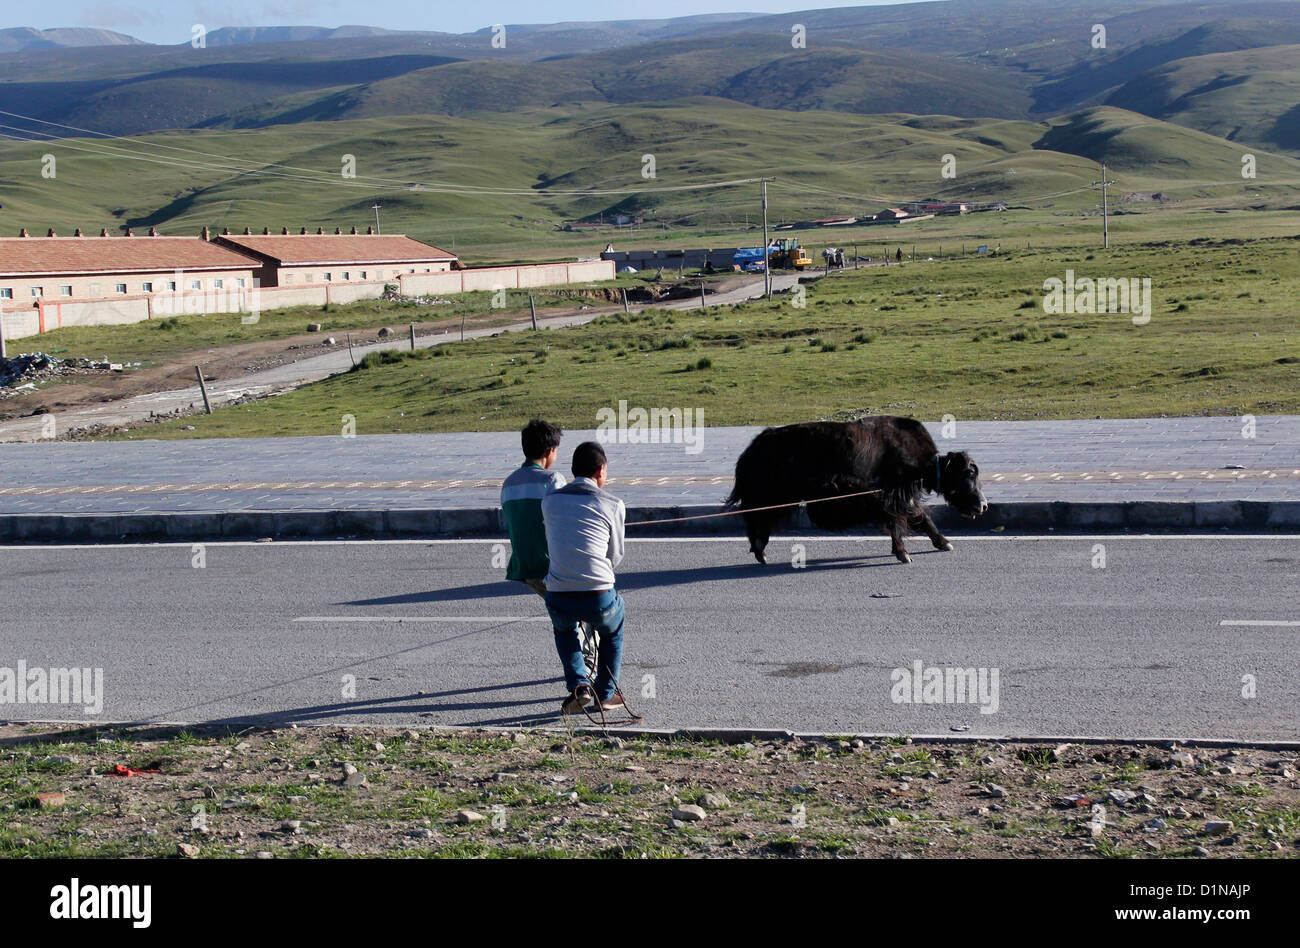 two tibetans catching a mountain yak with lasso in xinjiang county, china - Stock Image